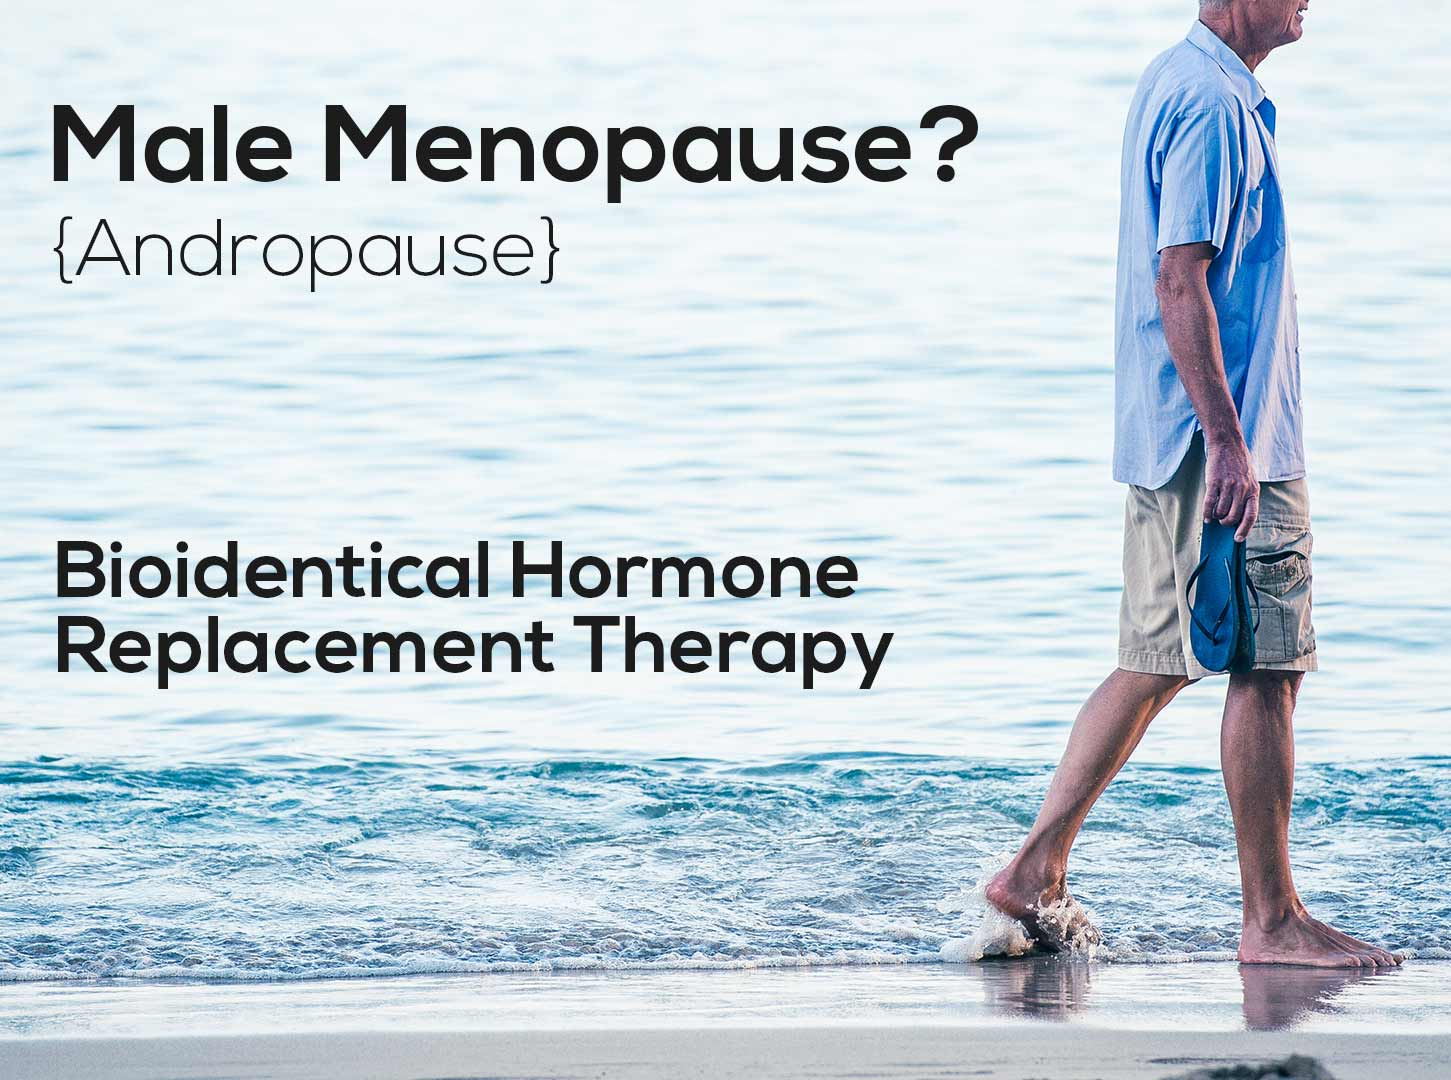 Male Menopause, Andropause, Hormone Replacement Therapy